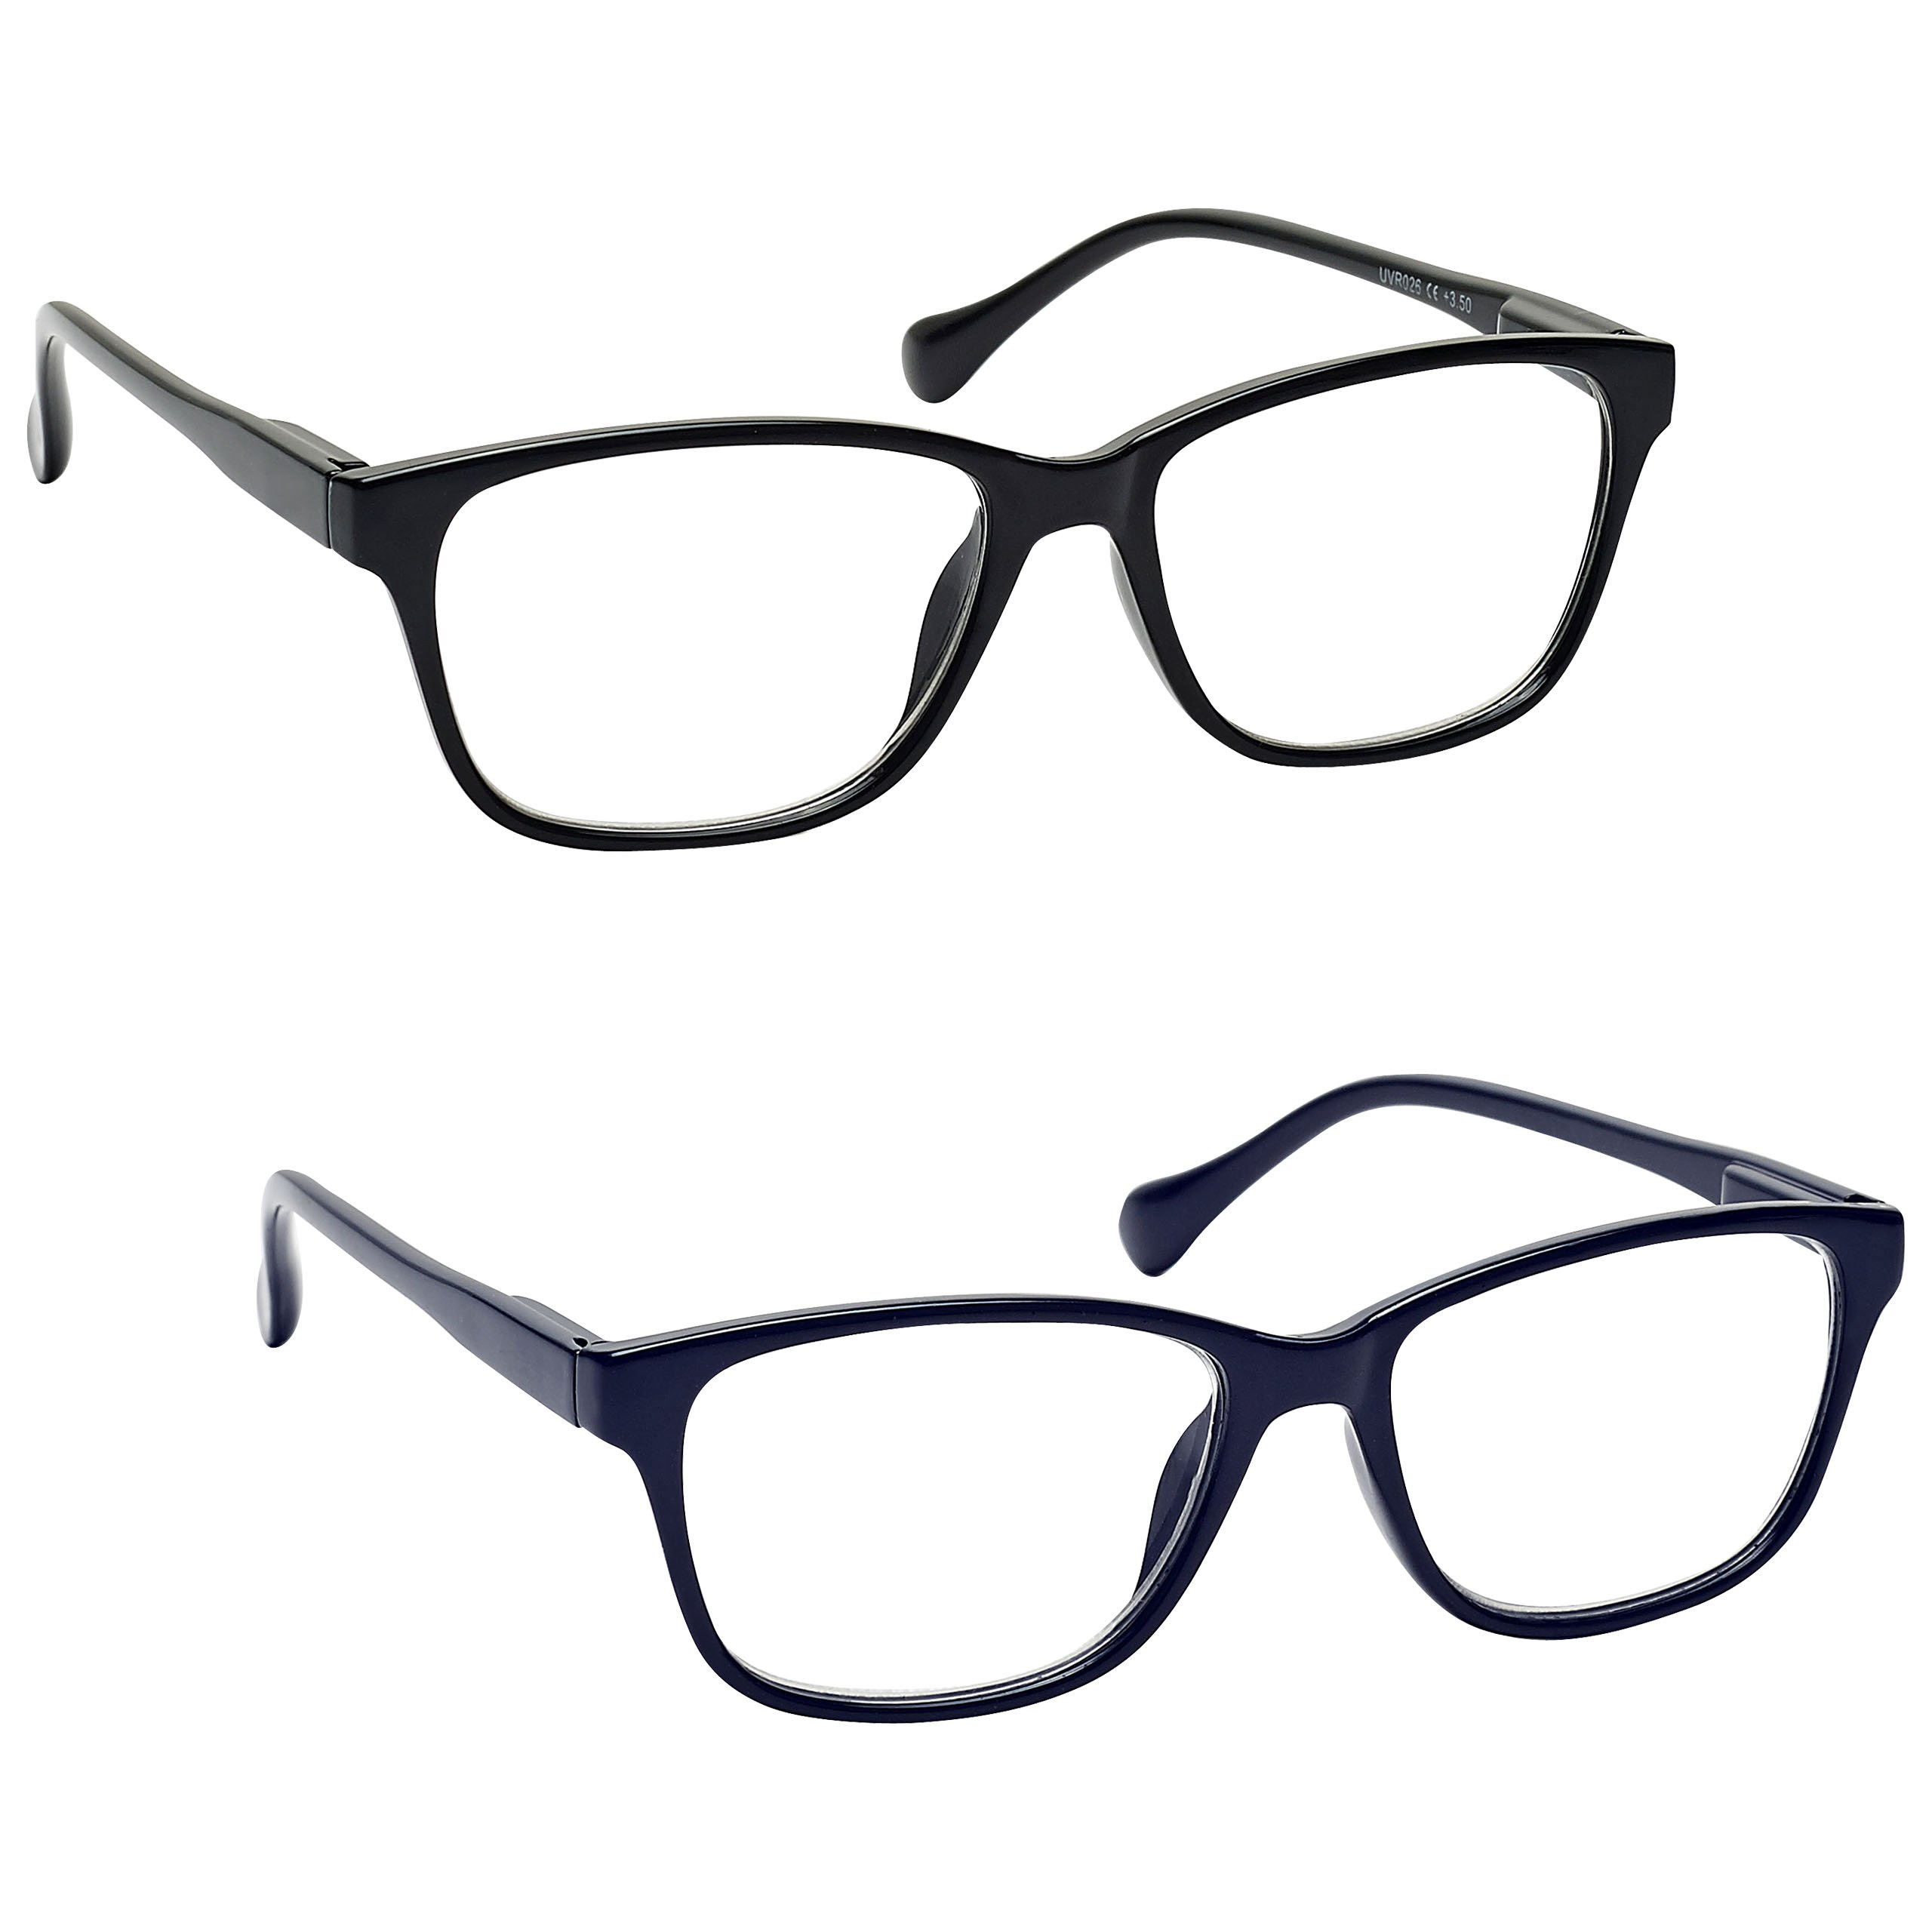 The Reading Glasses Company Black & Navy Blue Lightweight Readers Value 2 Pack Mens Womens Inc Bag RR27-13 +3.50